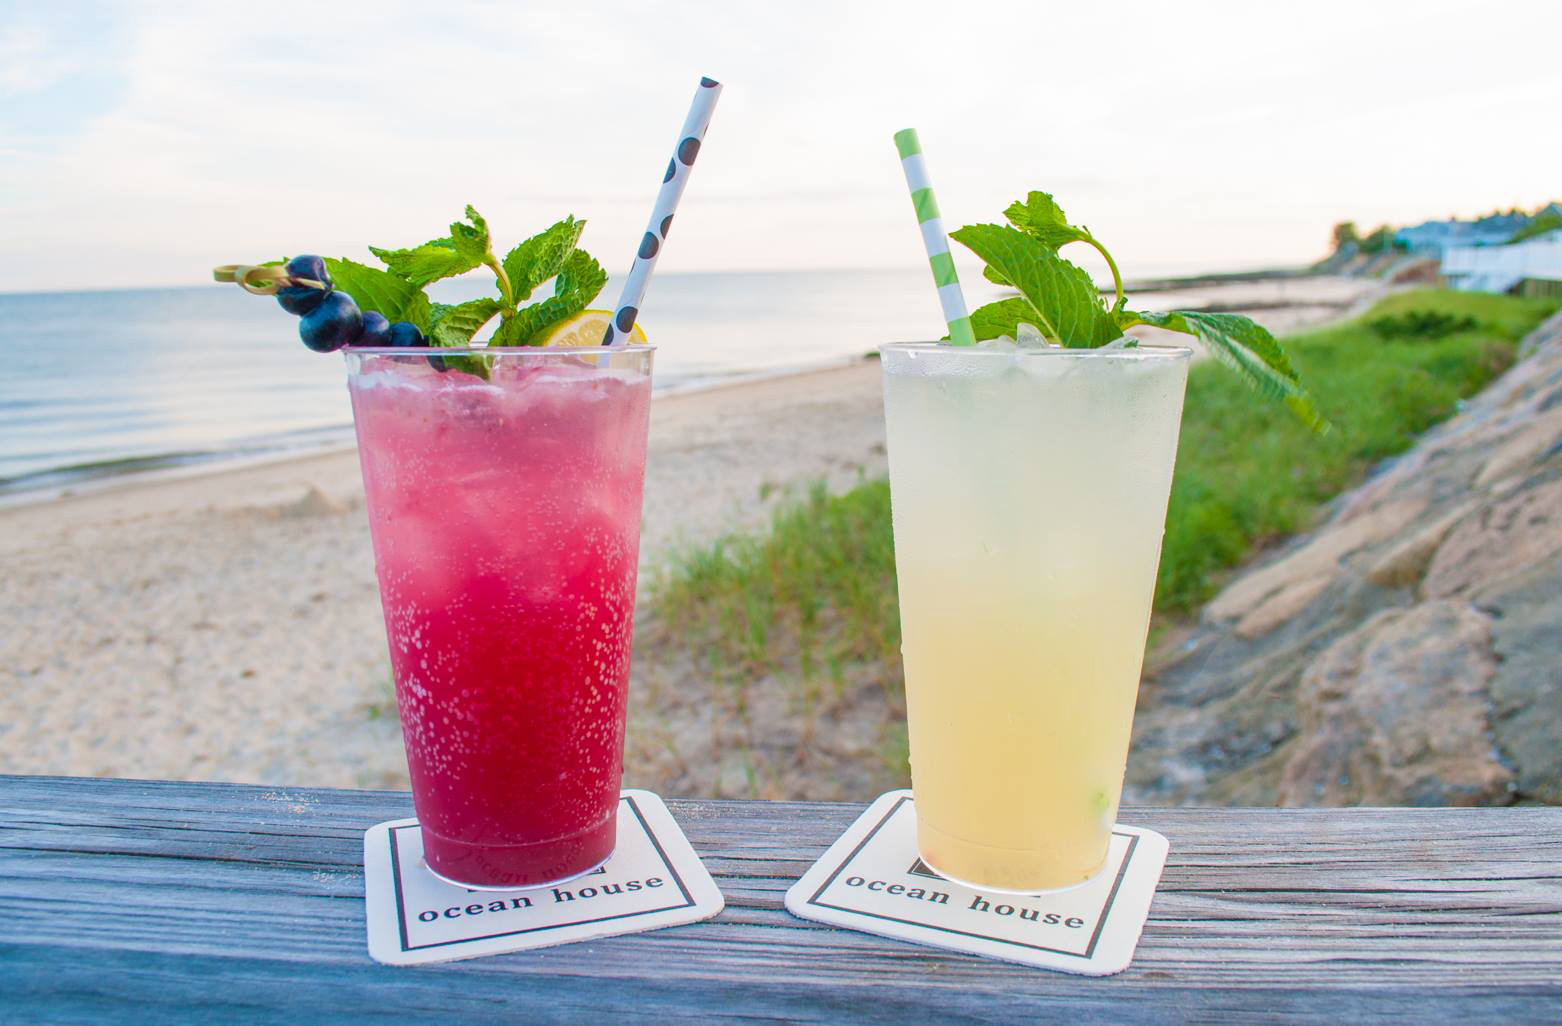 Ocean House Restaurant resides the Beach Bar, one of the Cape's coolest hot spots